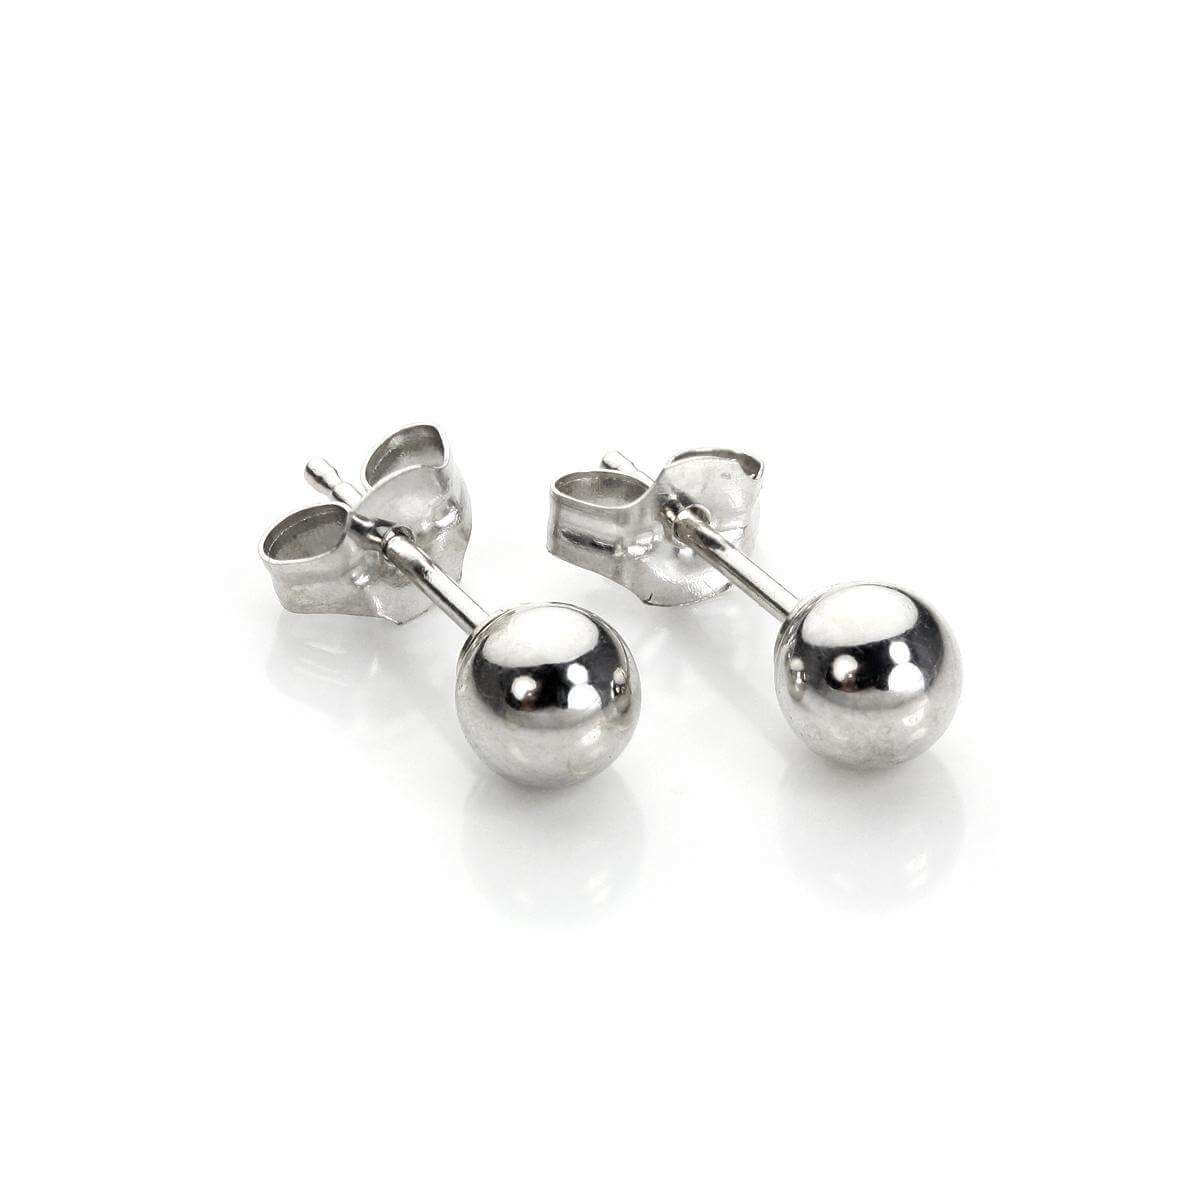 9ct White Gold 4mm Stud Earrings